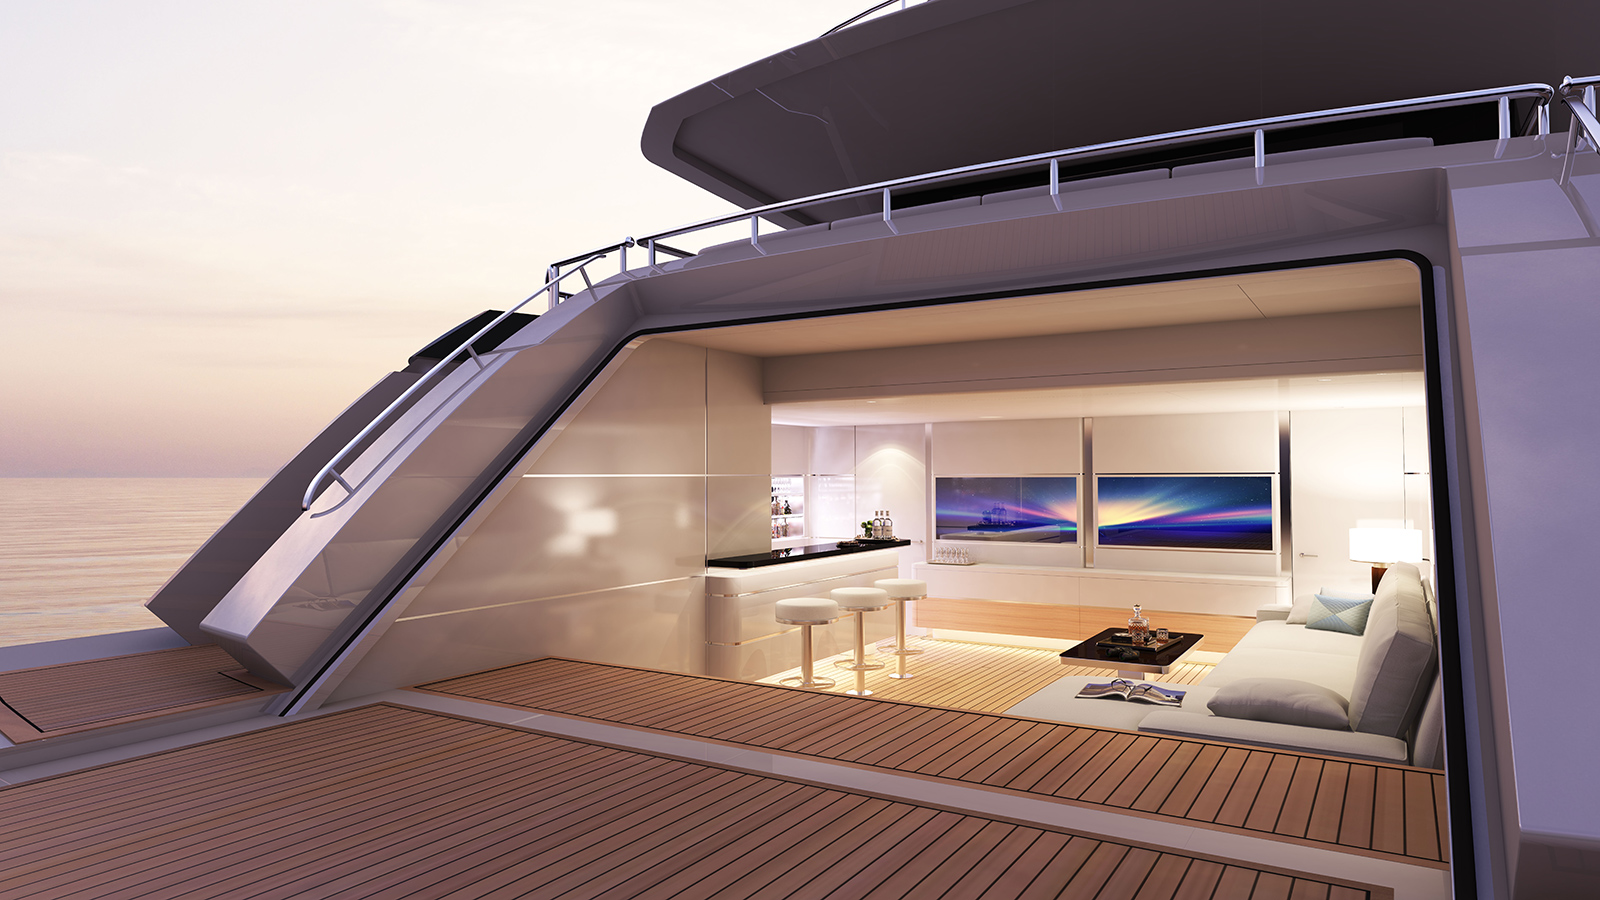 heesen-super-yacht-project-cayman-features-a-full-size-beach-club